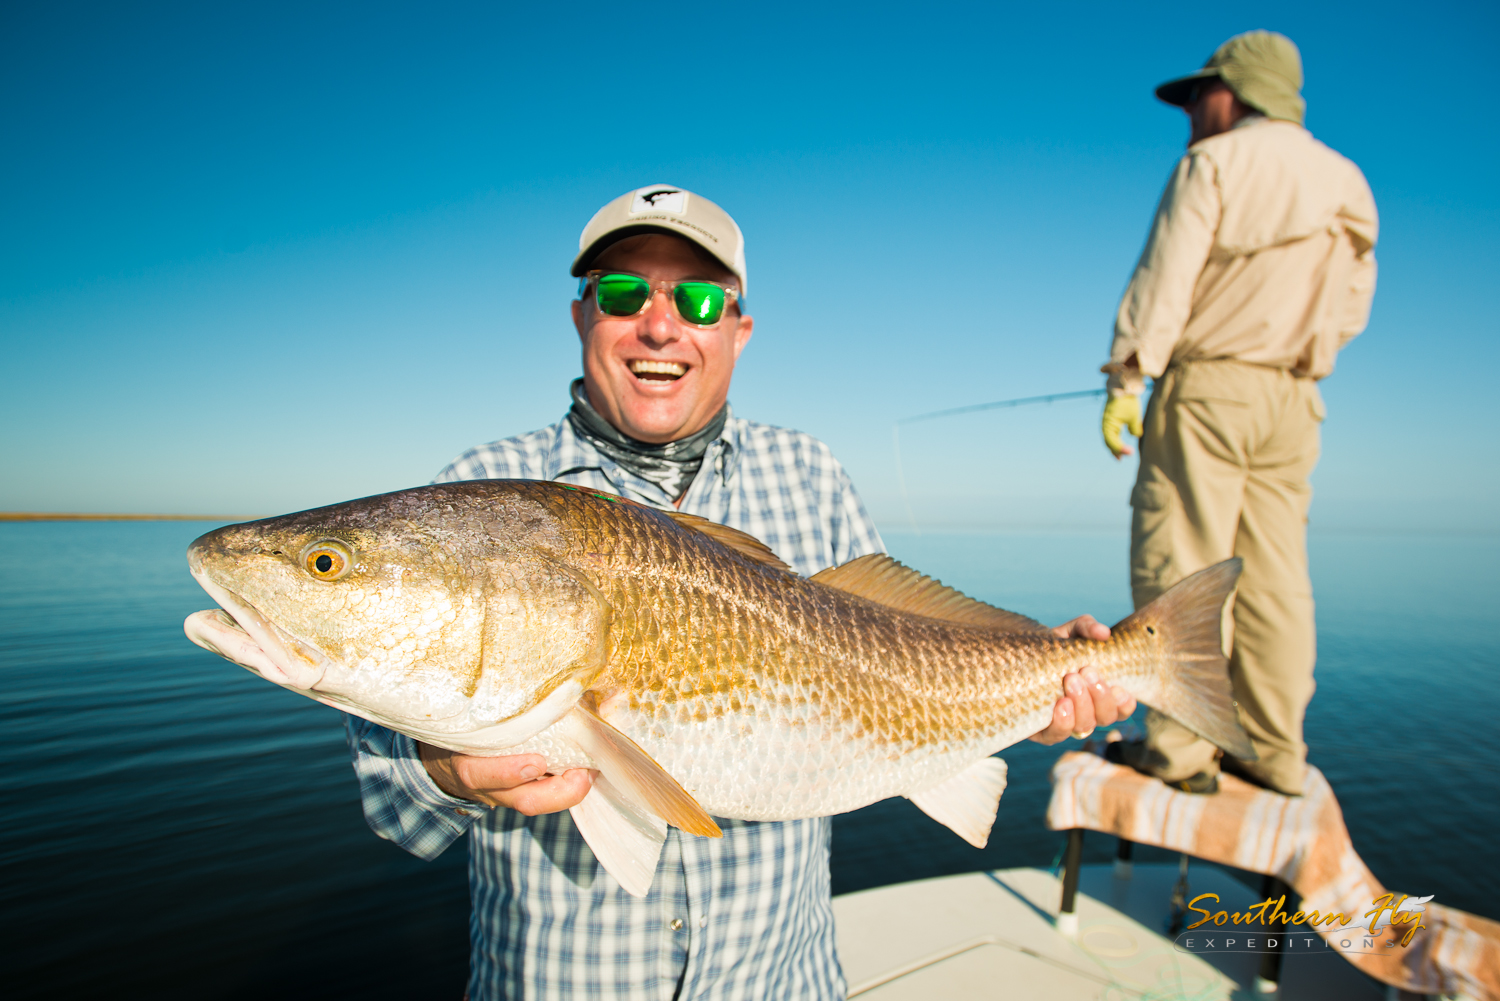 Best Spin Fishing Guide New Orleans Southern Fly Expeditions